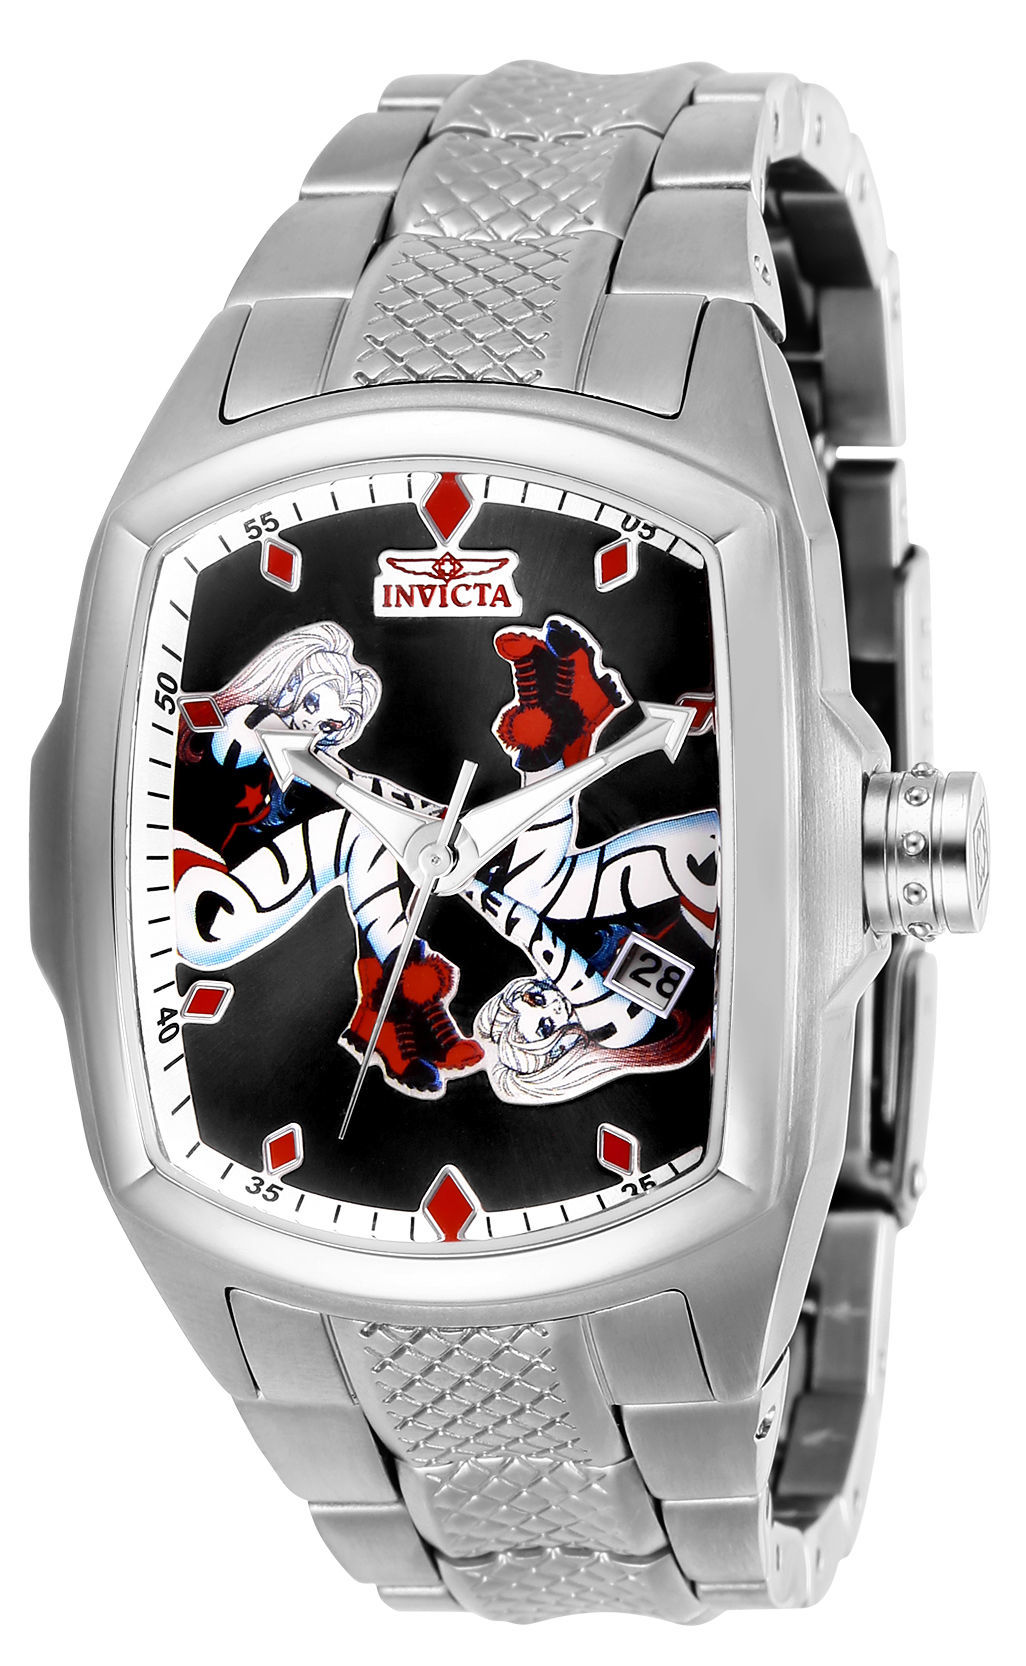 harley quinn invicta watch nycc